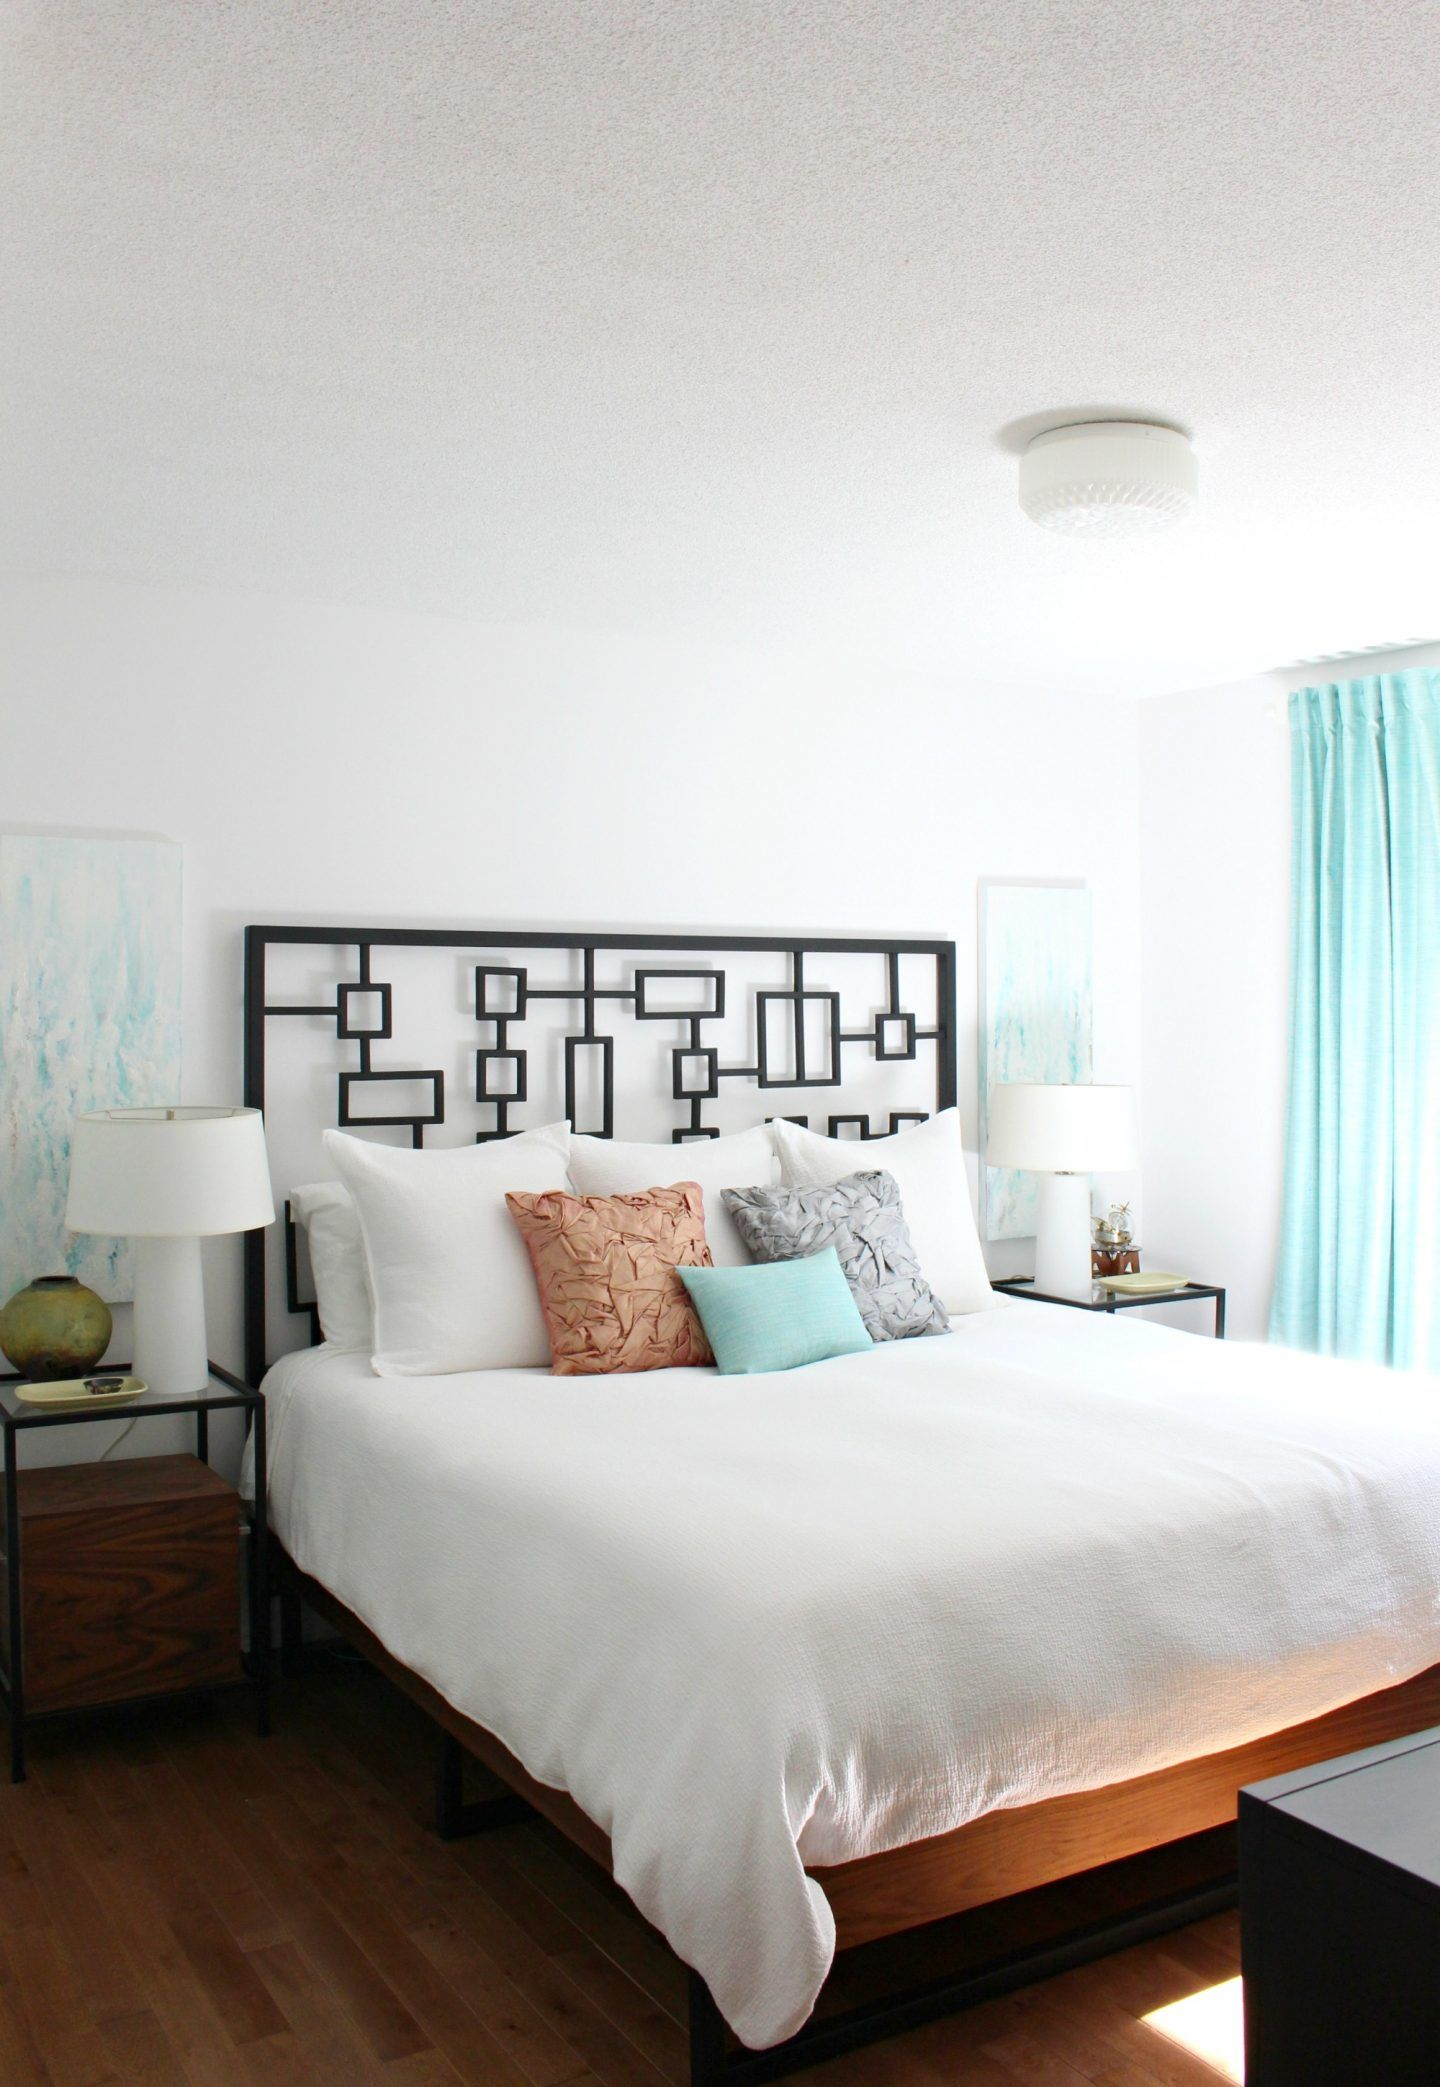 Peaceful Bedroom Decor Makeover With Muted Pastels Peaceful